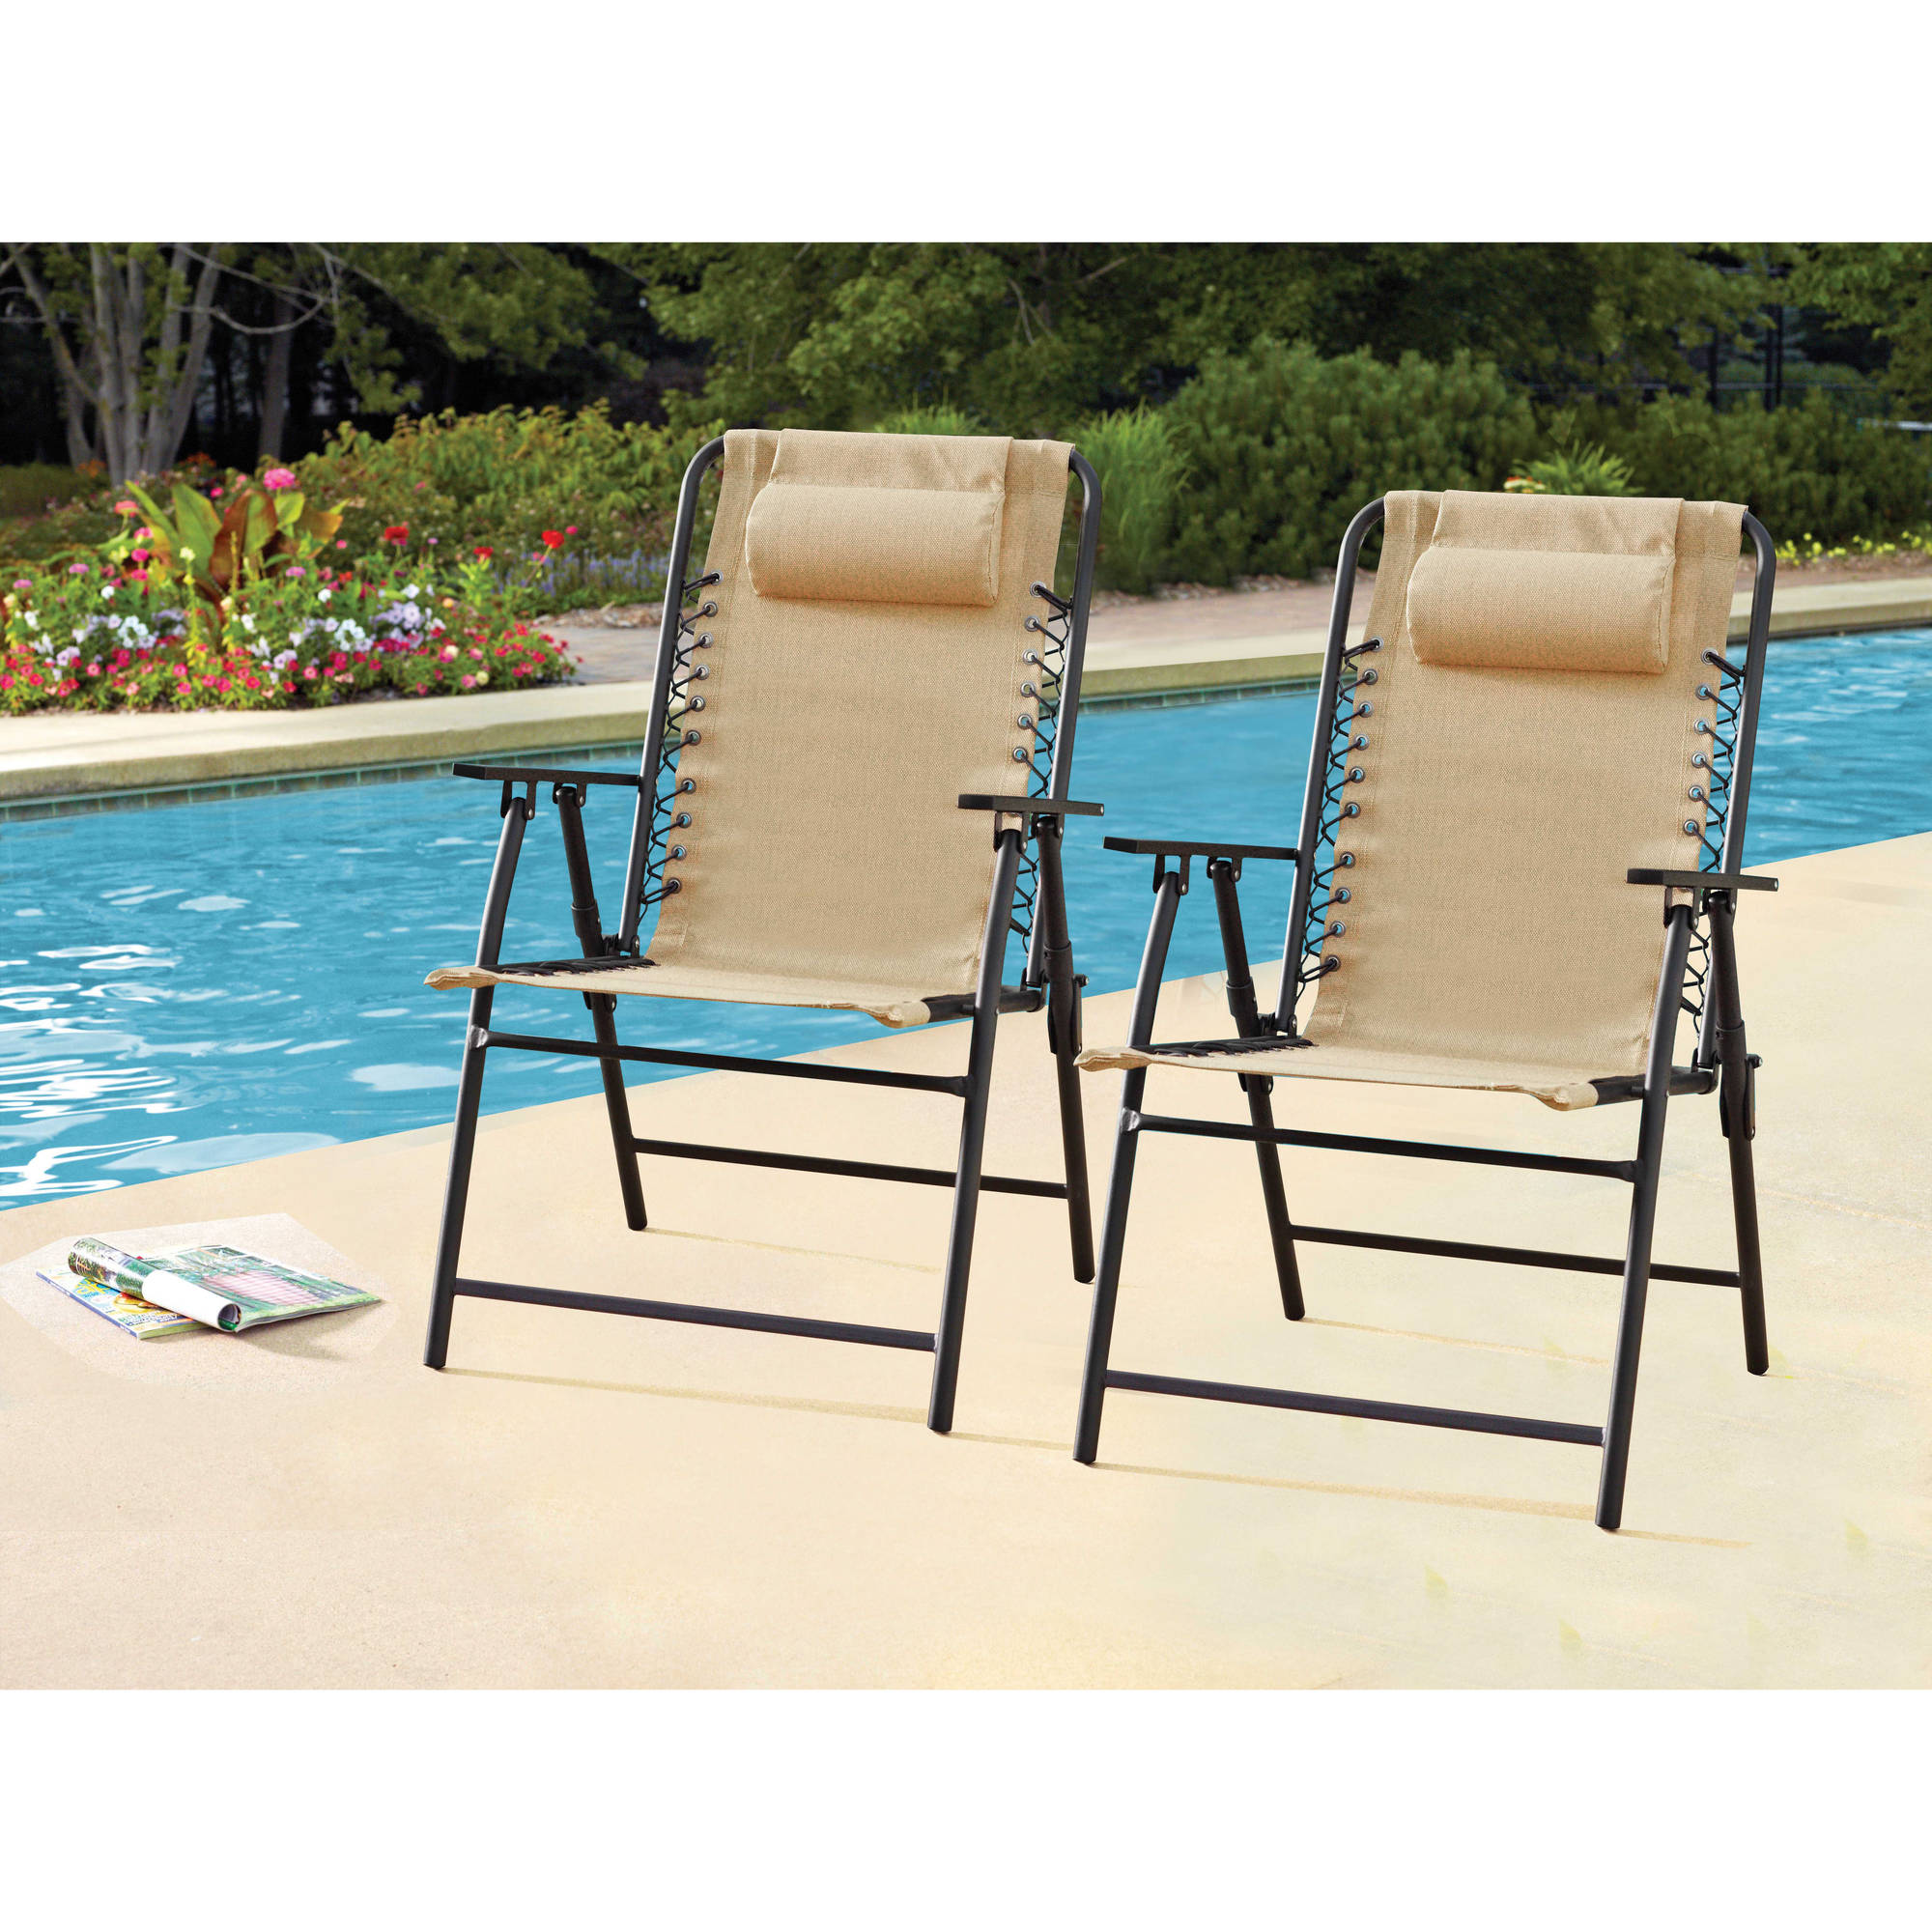 Mainstays Bungee Chairs Set of 2 Multiple Colors Walmart